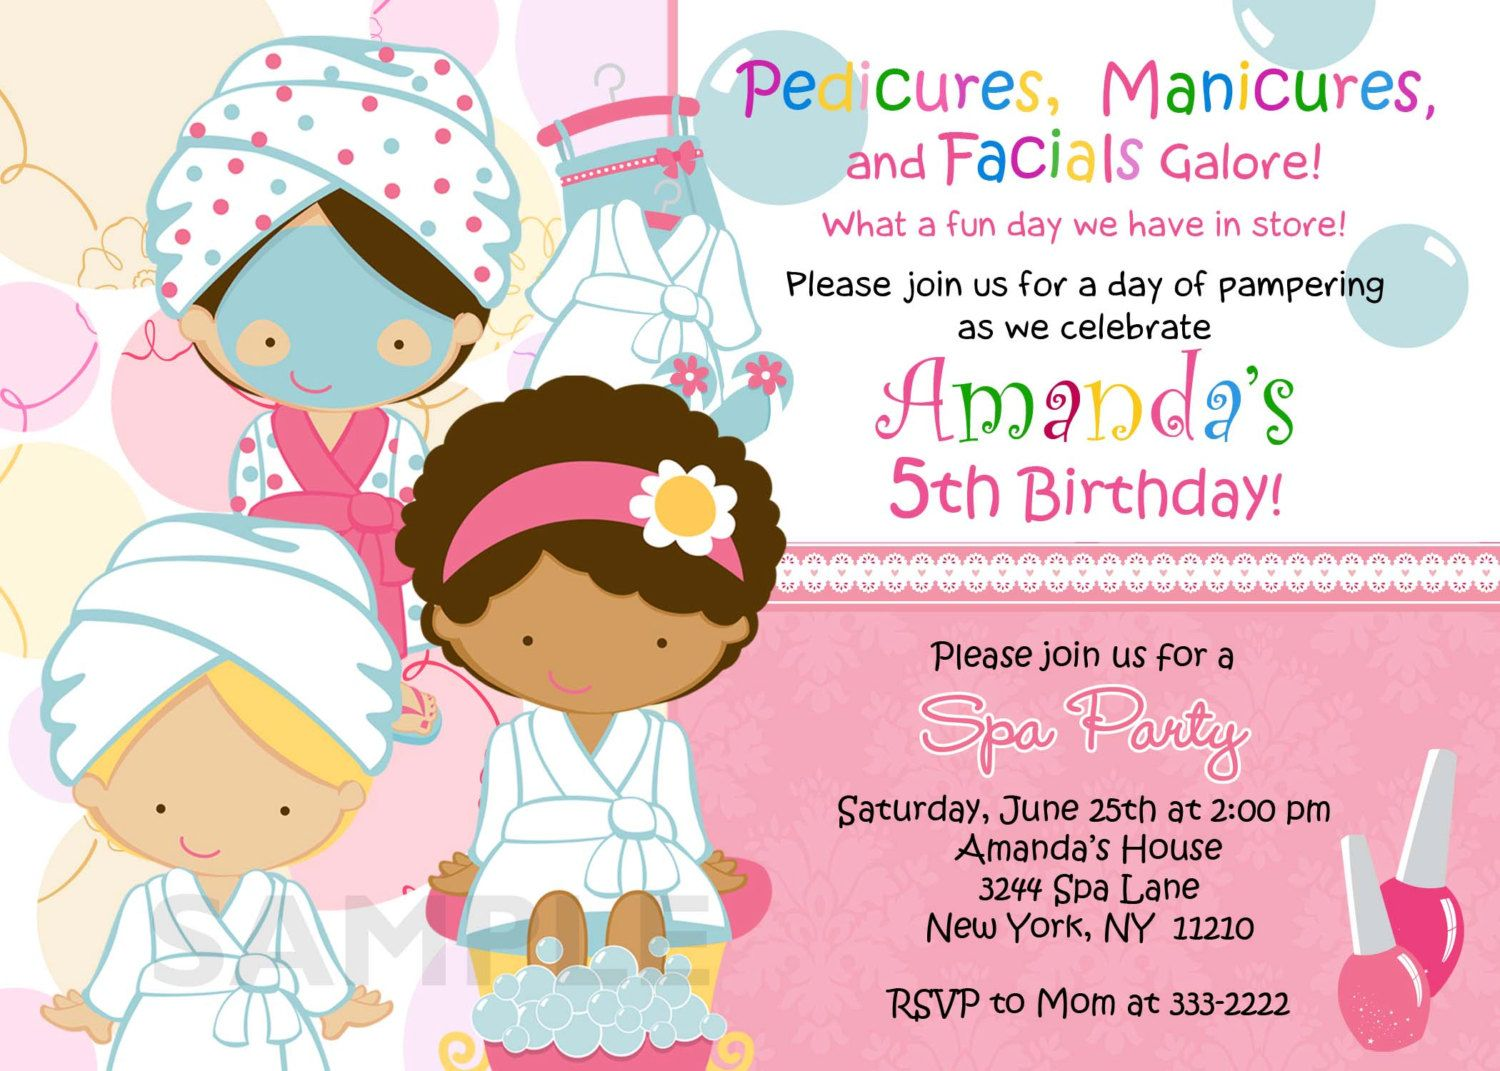 Birthday Invitation Personalized Spa Mani Pedi Birthday Party – Printable Spa Party Invitations